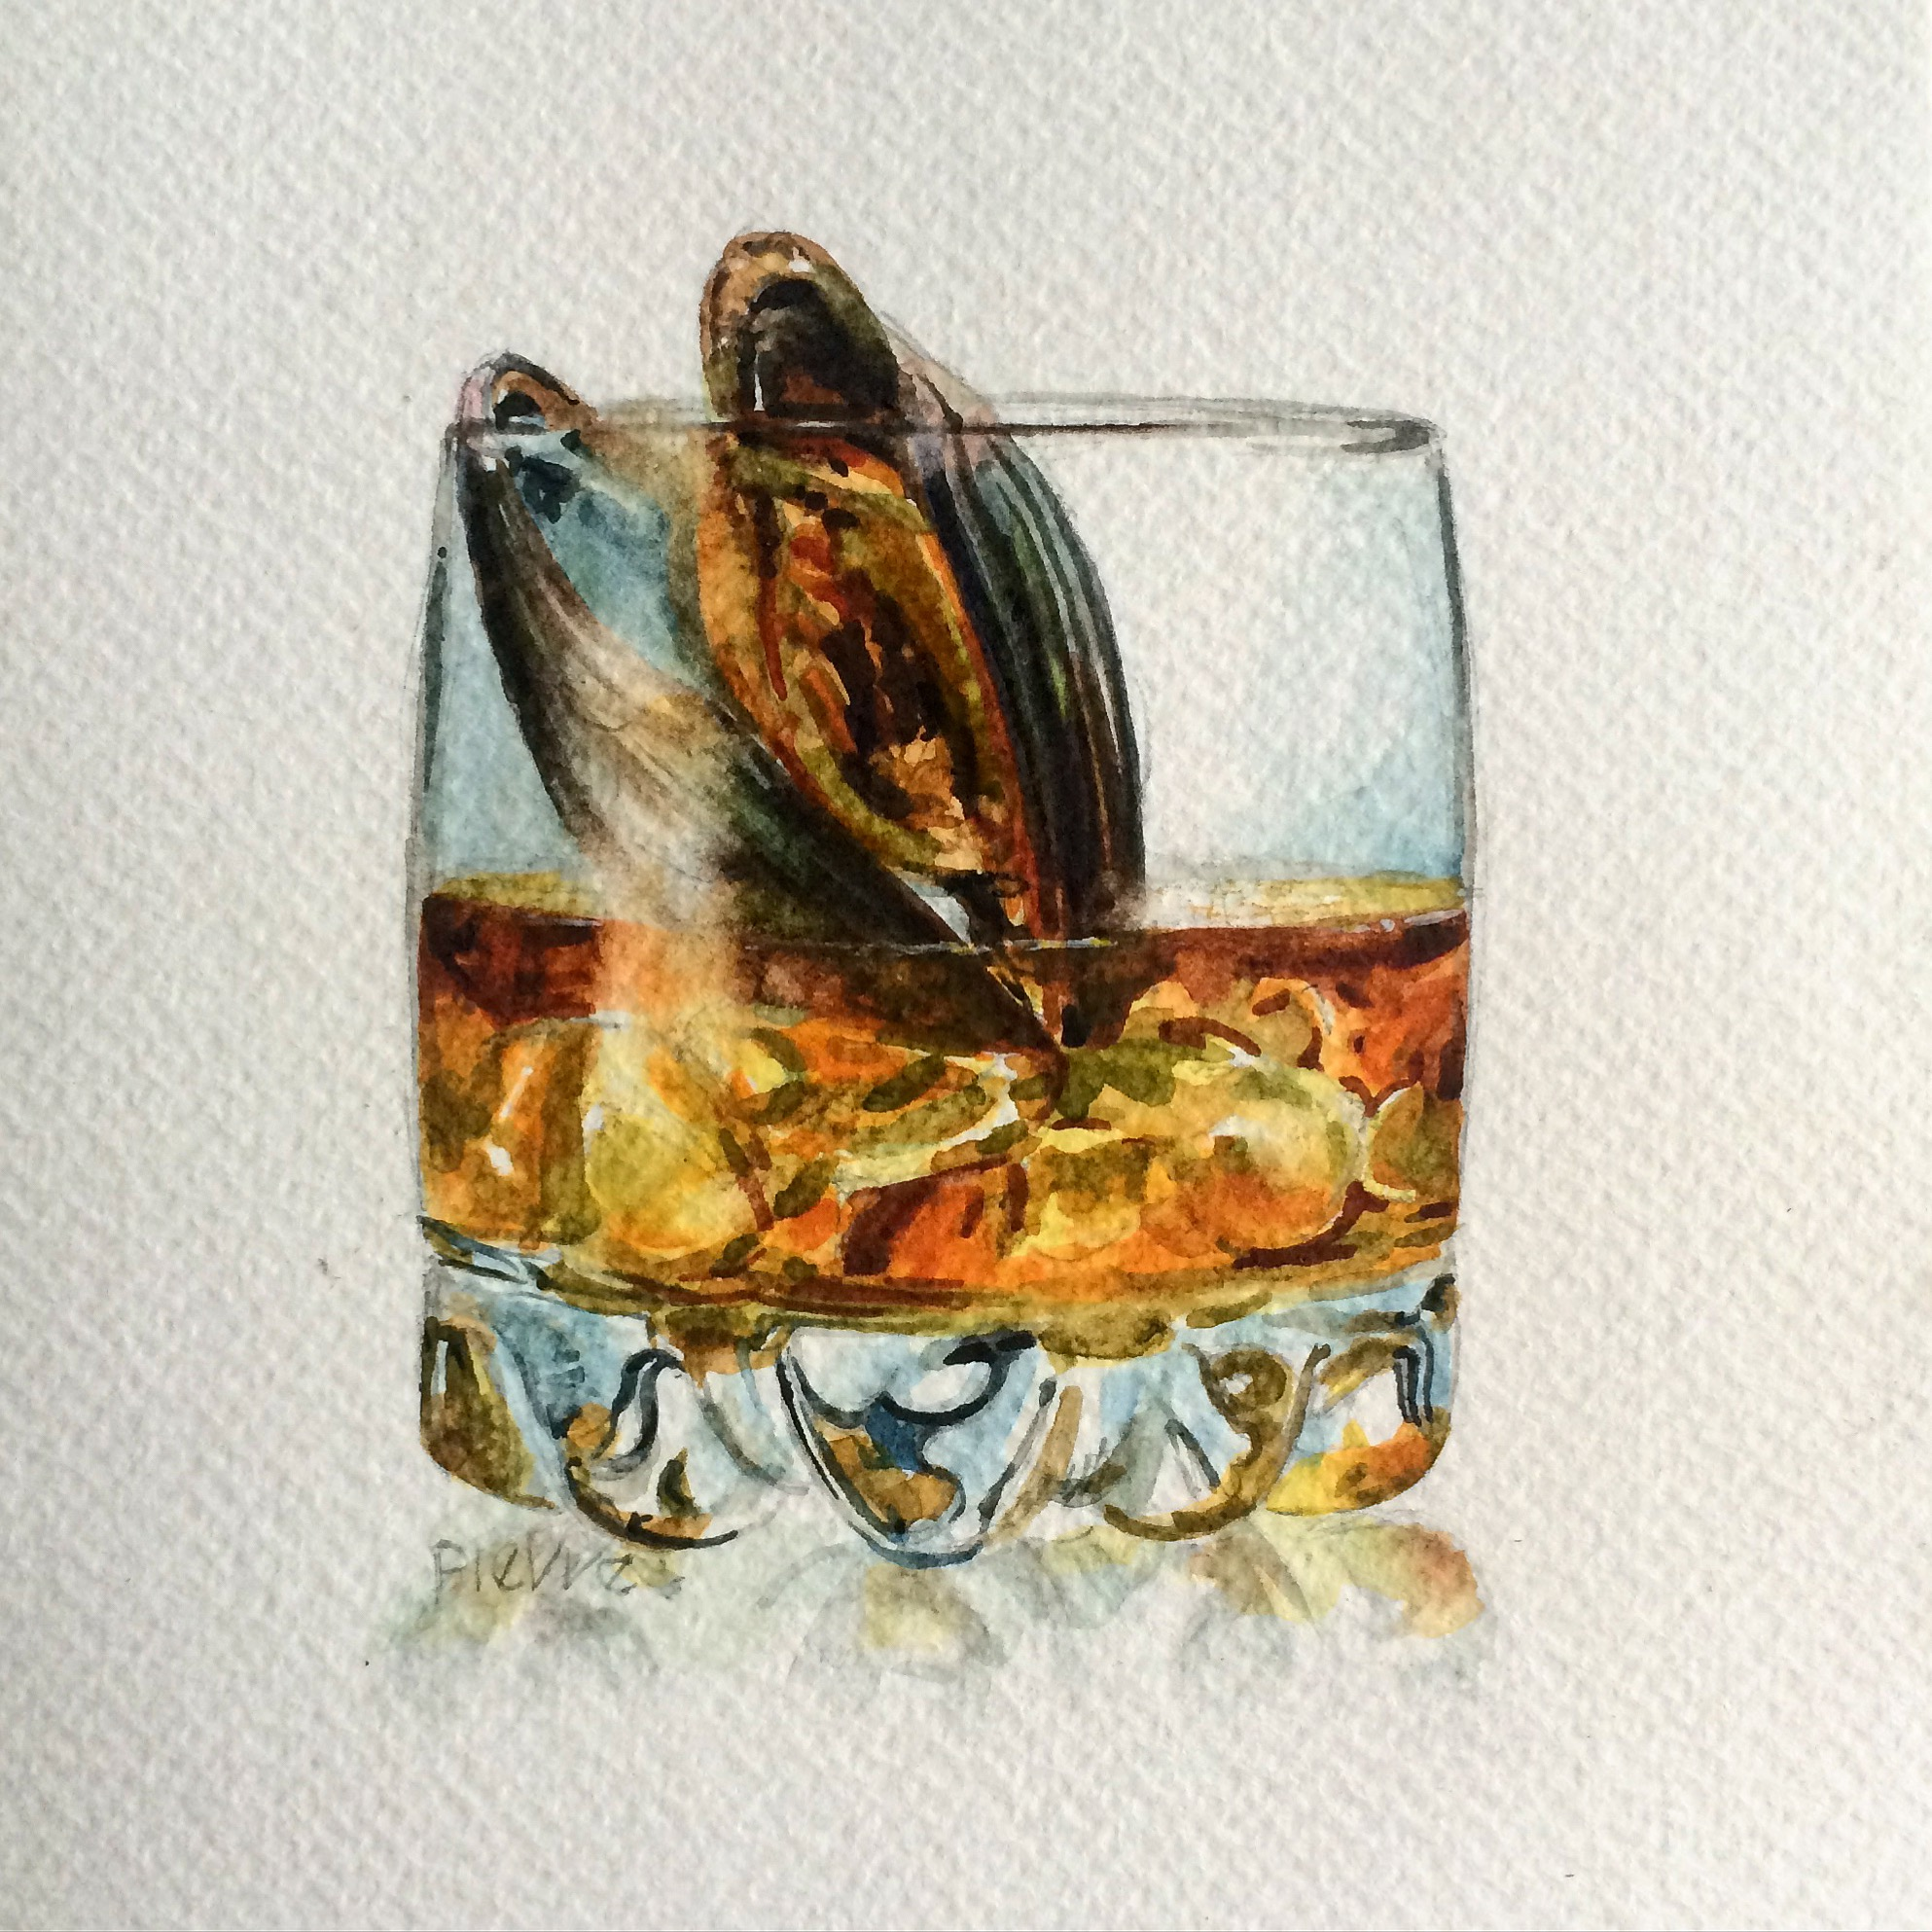 watercolour painting showing a glass of whiskey wit a mussel inside